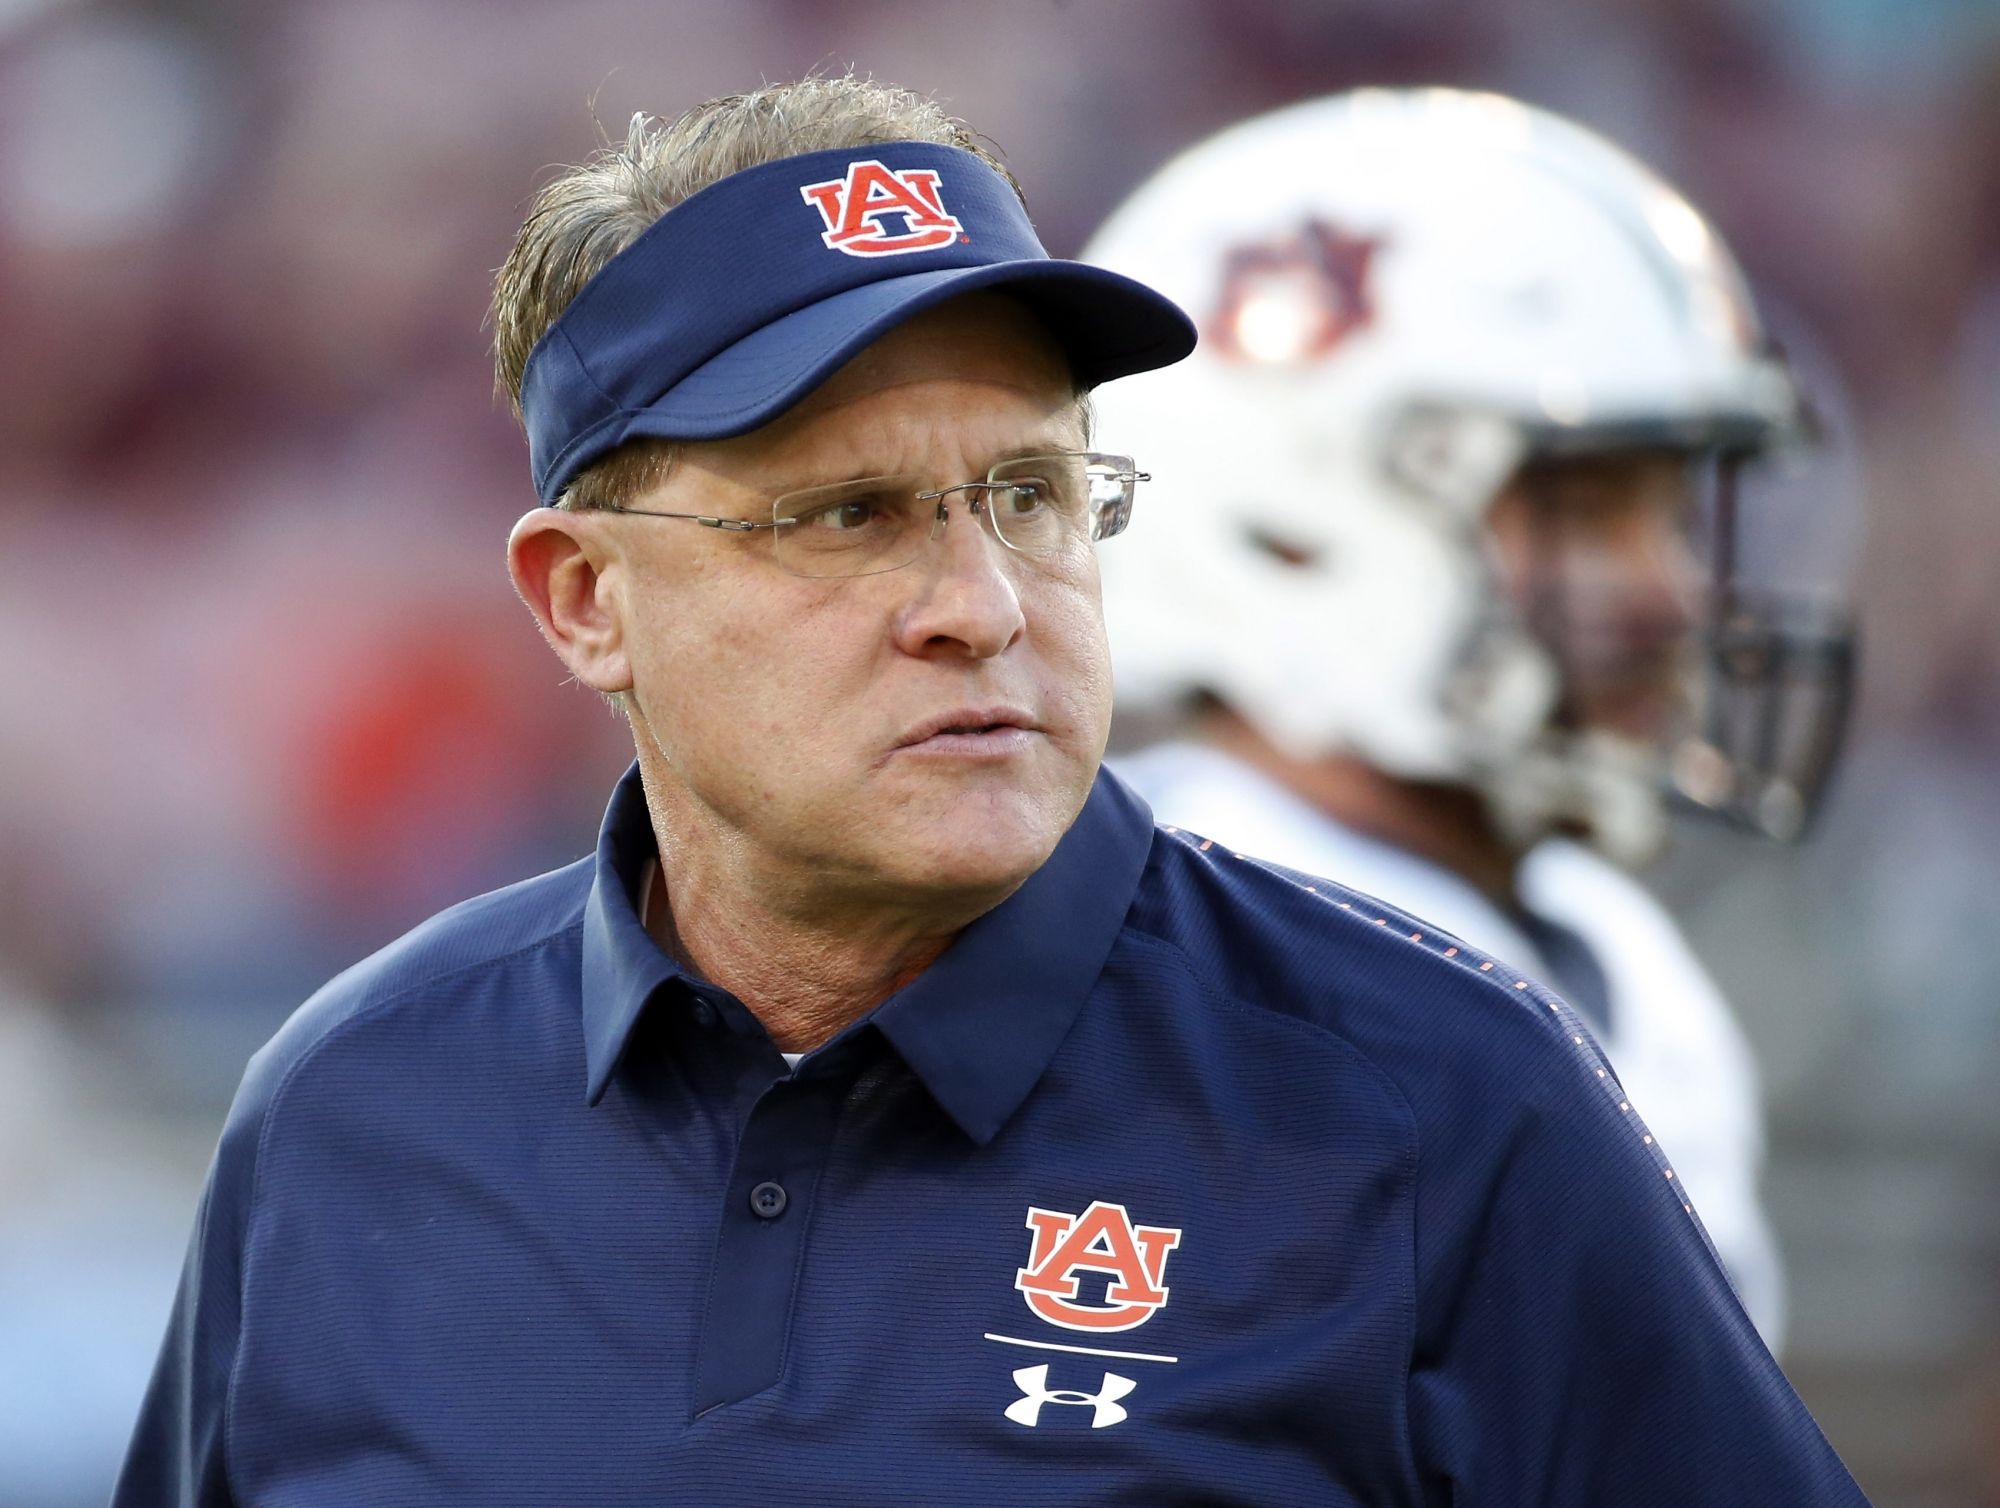 Auburn S Malzahn Took Refreshing Look At His Past Offenses